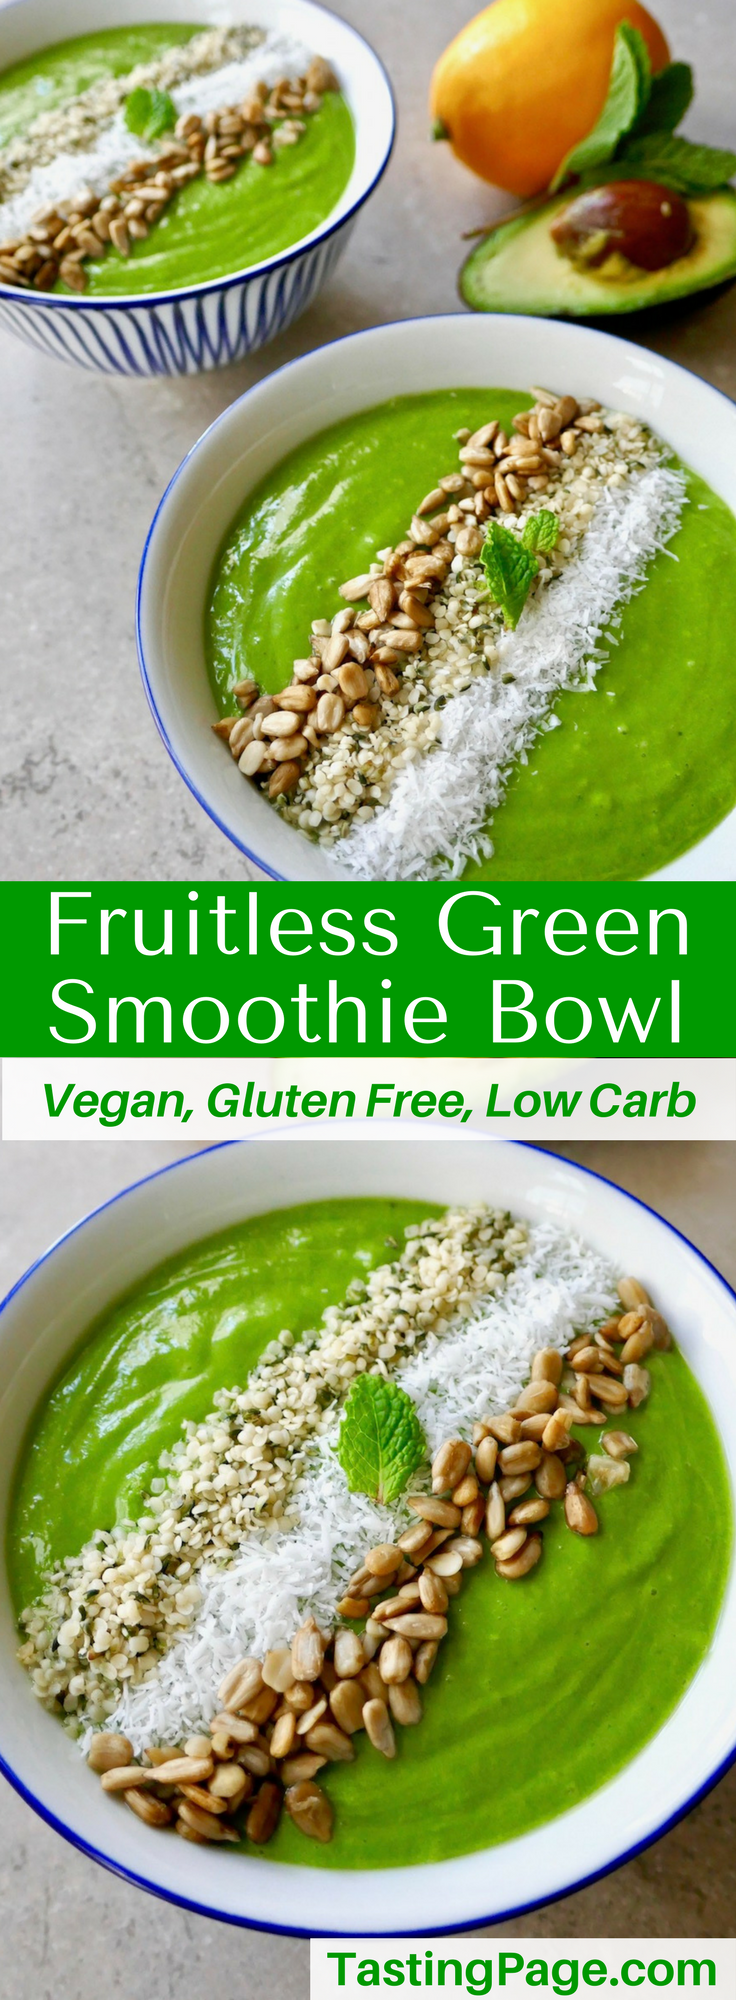 Reduce your sugar intake with this fruitless green smoothie bowl. It'll energize you without a sugar crash afterward. It's gluten free, dairy free, vegan, and free from refined sugar | TastingPage.com